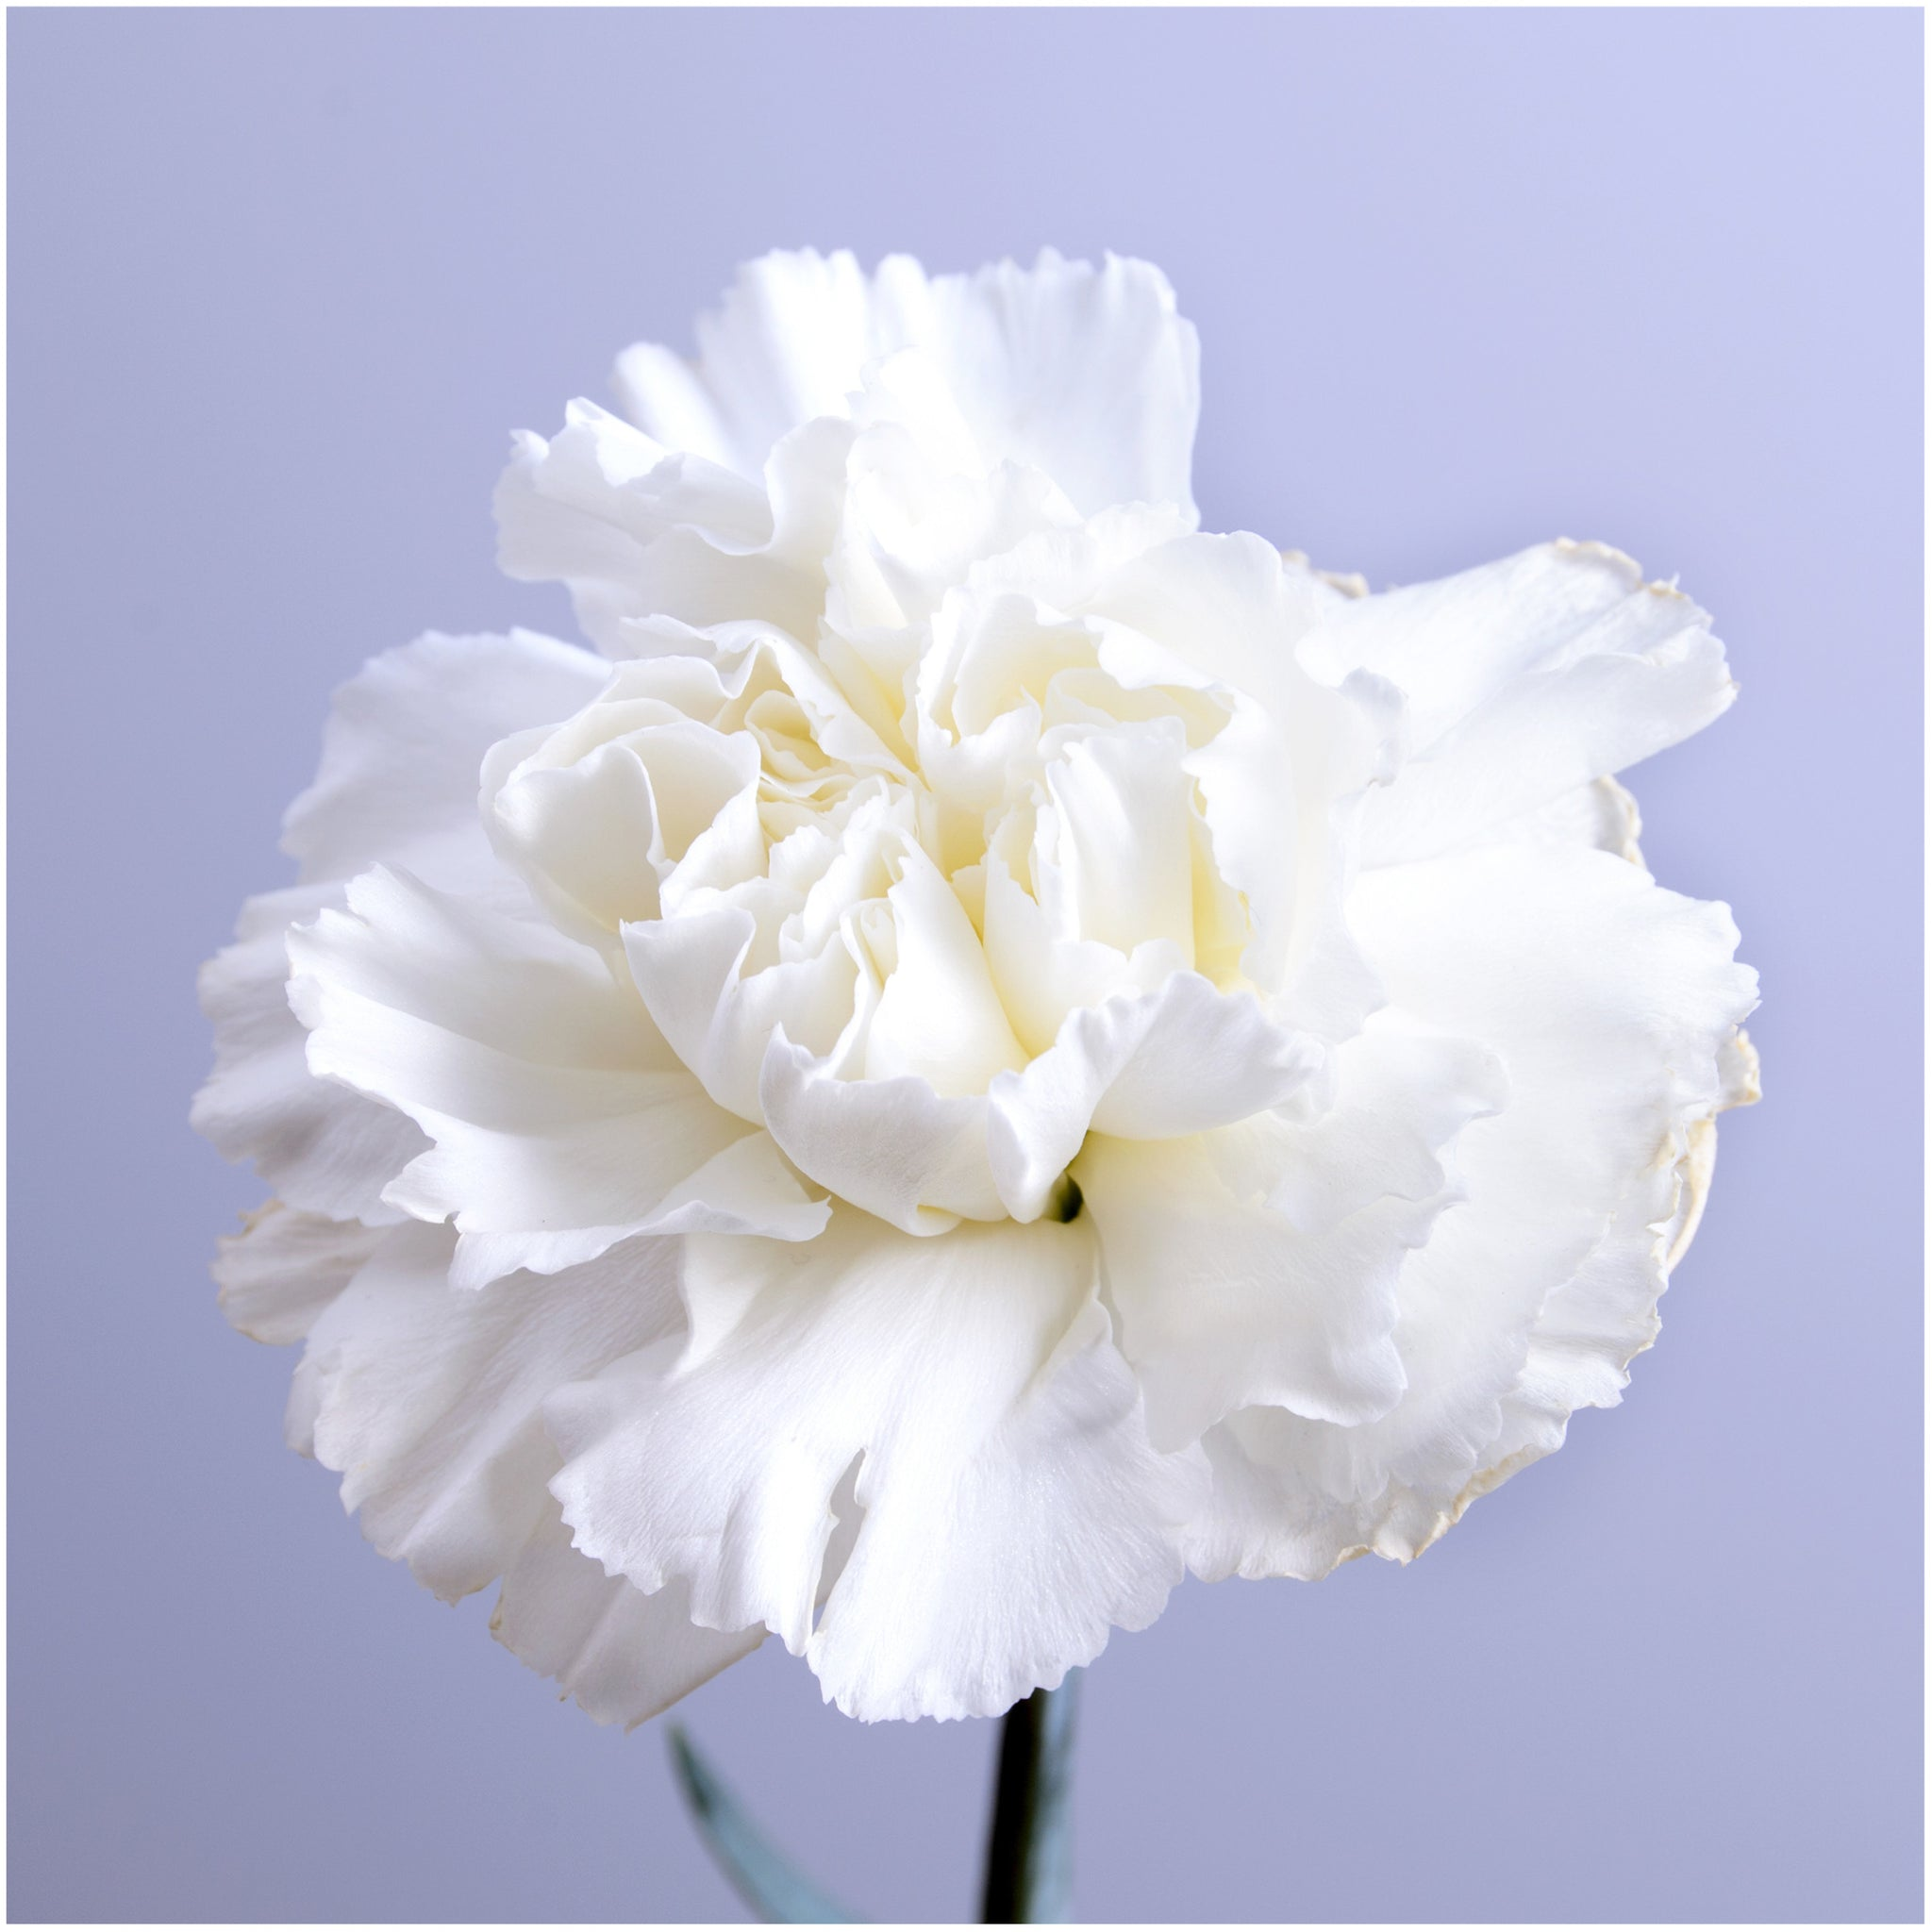 Grenadin White Carnation Seeds (Dianthus caryophyllus) - Seed Needs